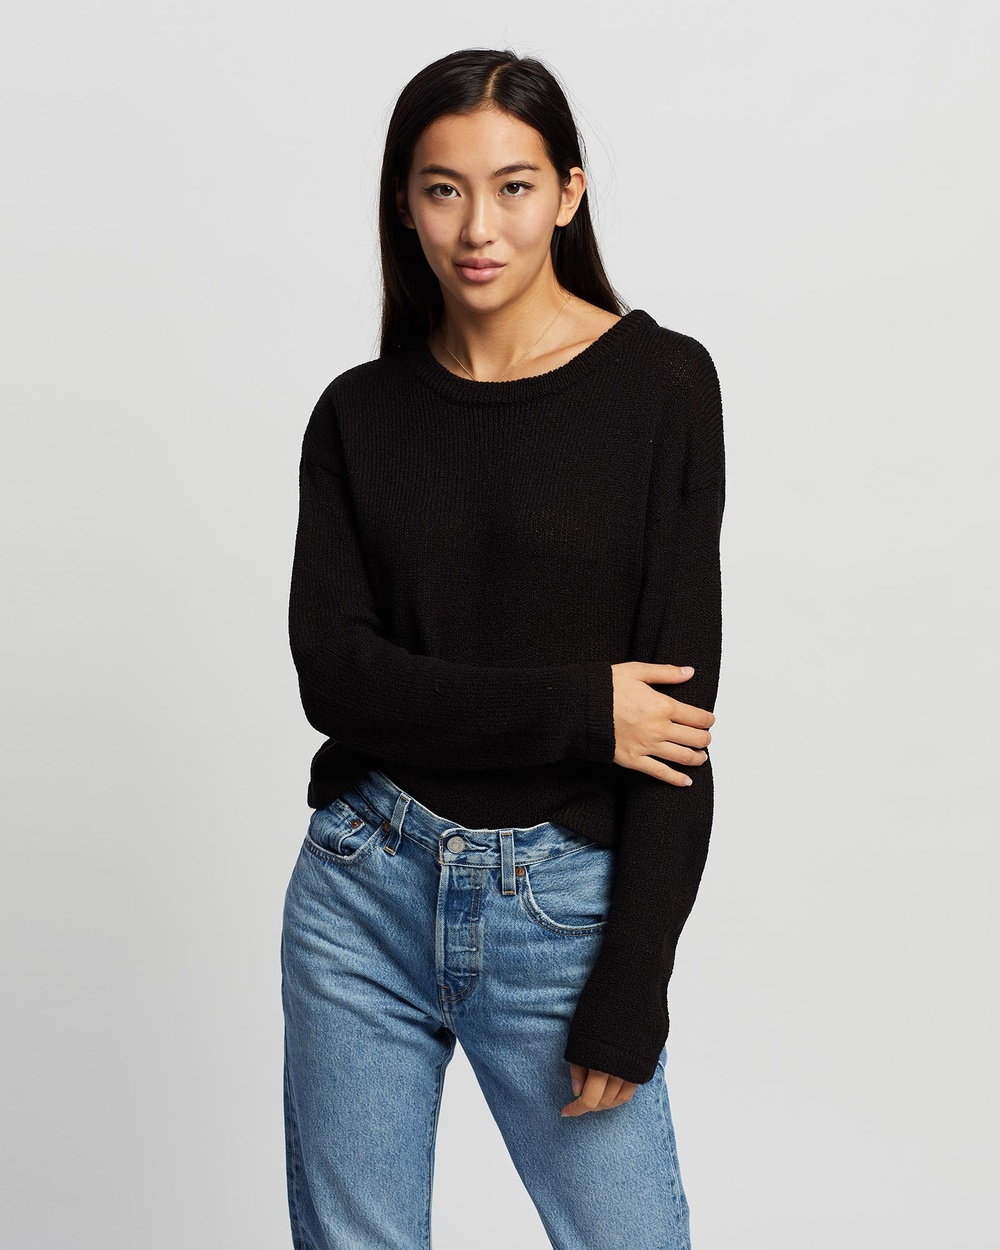 All About Eve Kindred Knit Jumpers & Cardigans BLACK